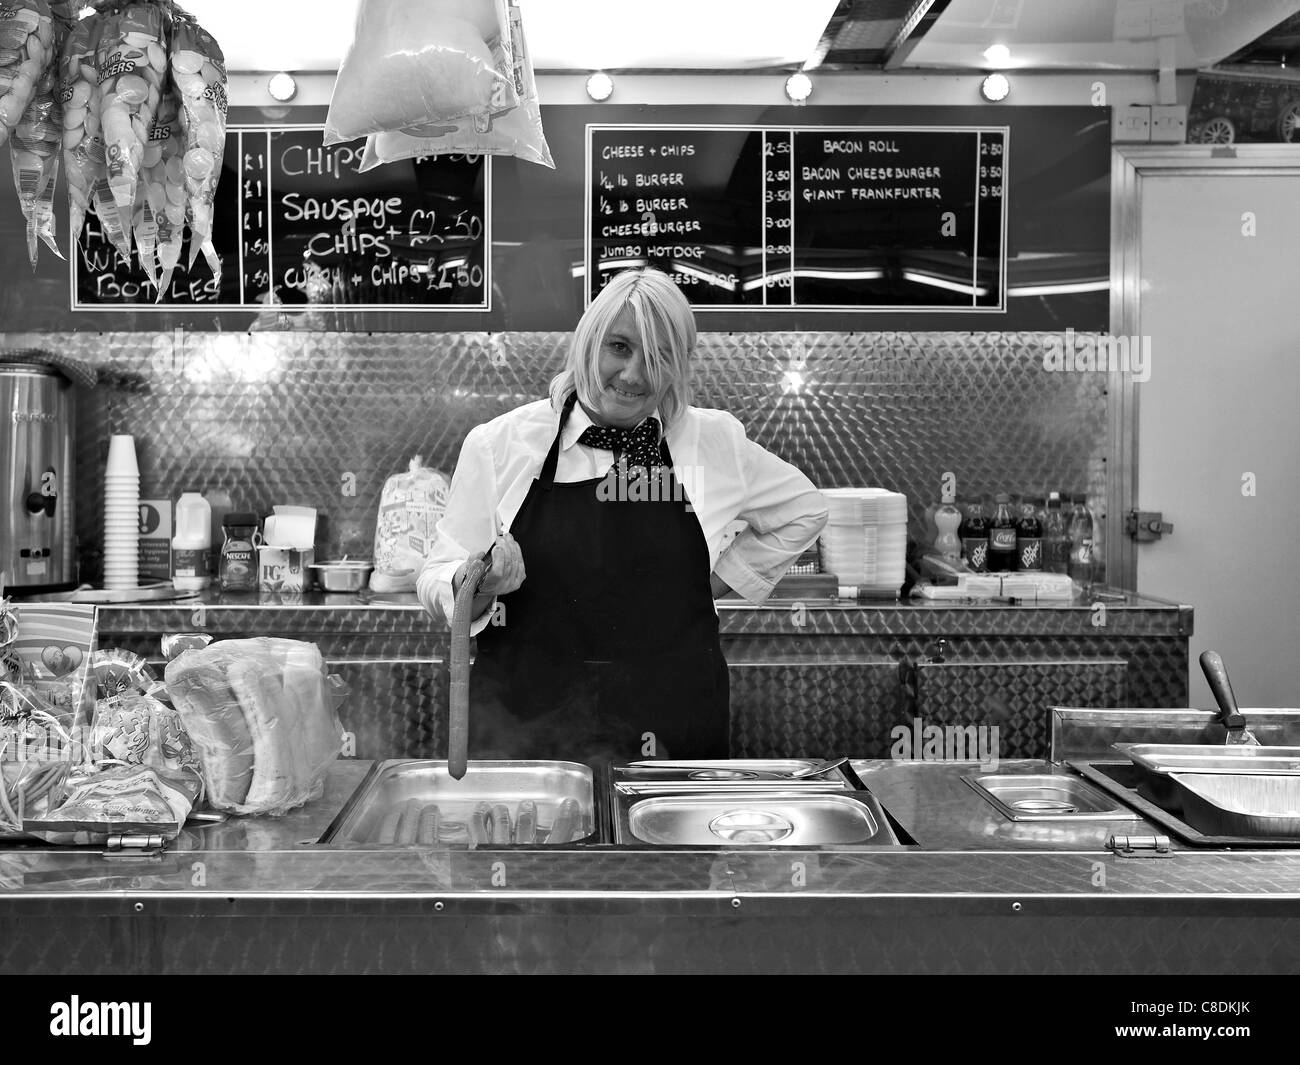 Fast food stall worker holds up a large Frankfurter sausage England UK Black and white photography - Stock Image